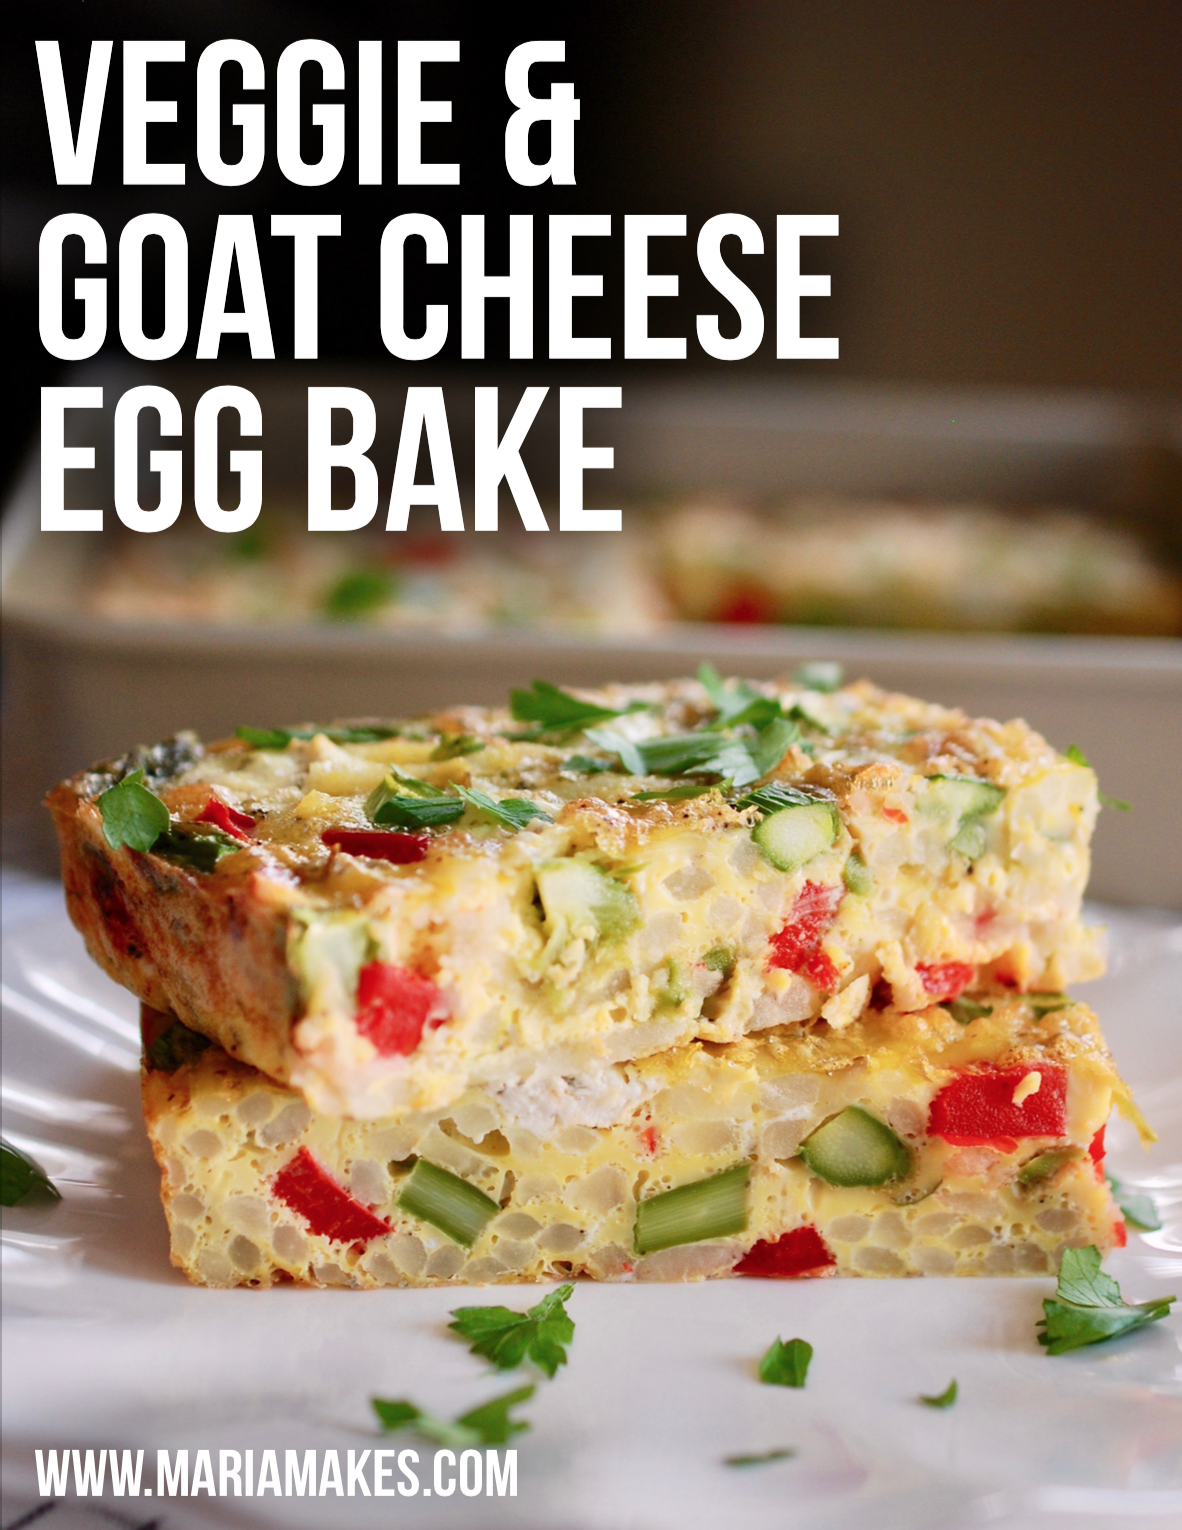 Veggie & Goat Cheese Egg Bake – Maria Makes: Loaded with hash browns, asparagus, red bell peppers, and garlic & herb goat cheese, this is a breakfast you'll be happy to eat ANY day of the week! #mealprep